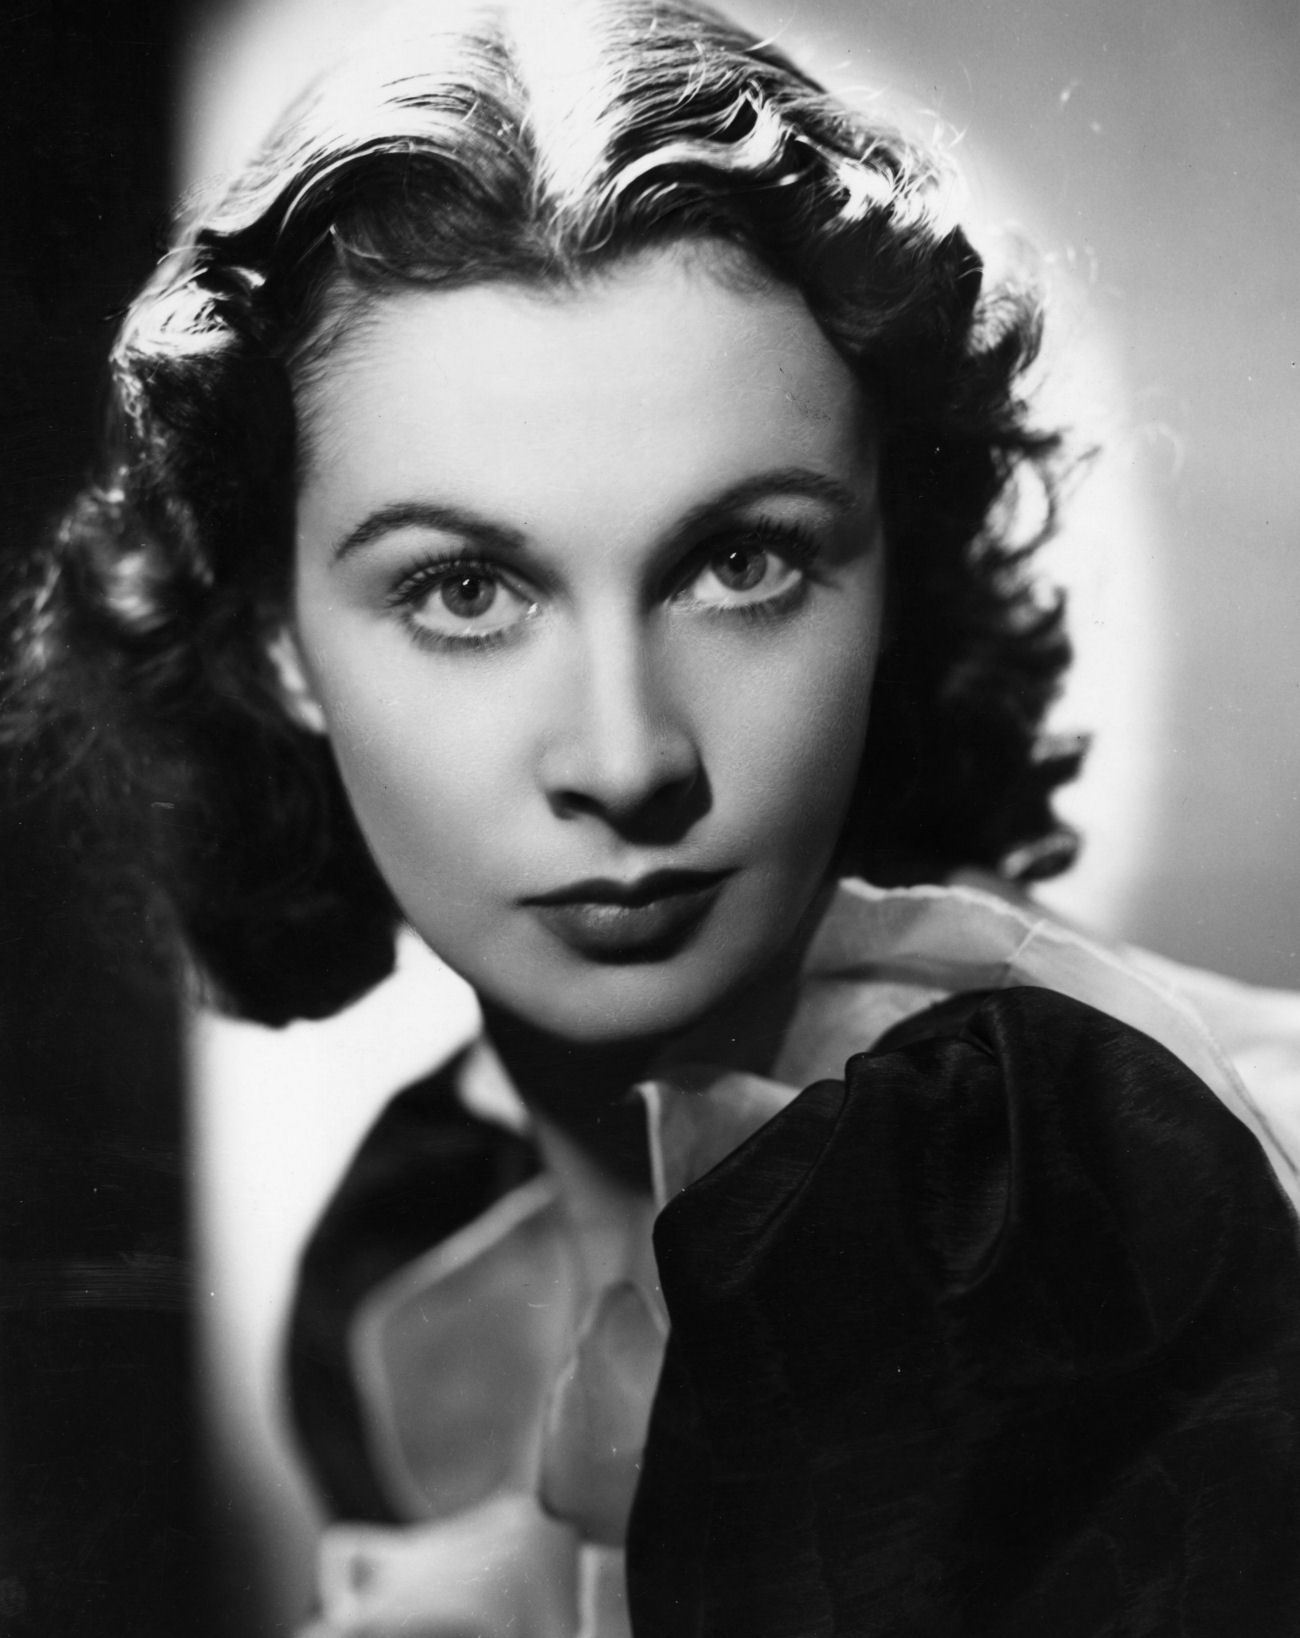 Vivien Leigh - Vivien Leigh Photo (11612481) - Fanpop